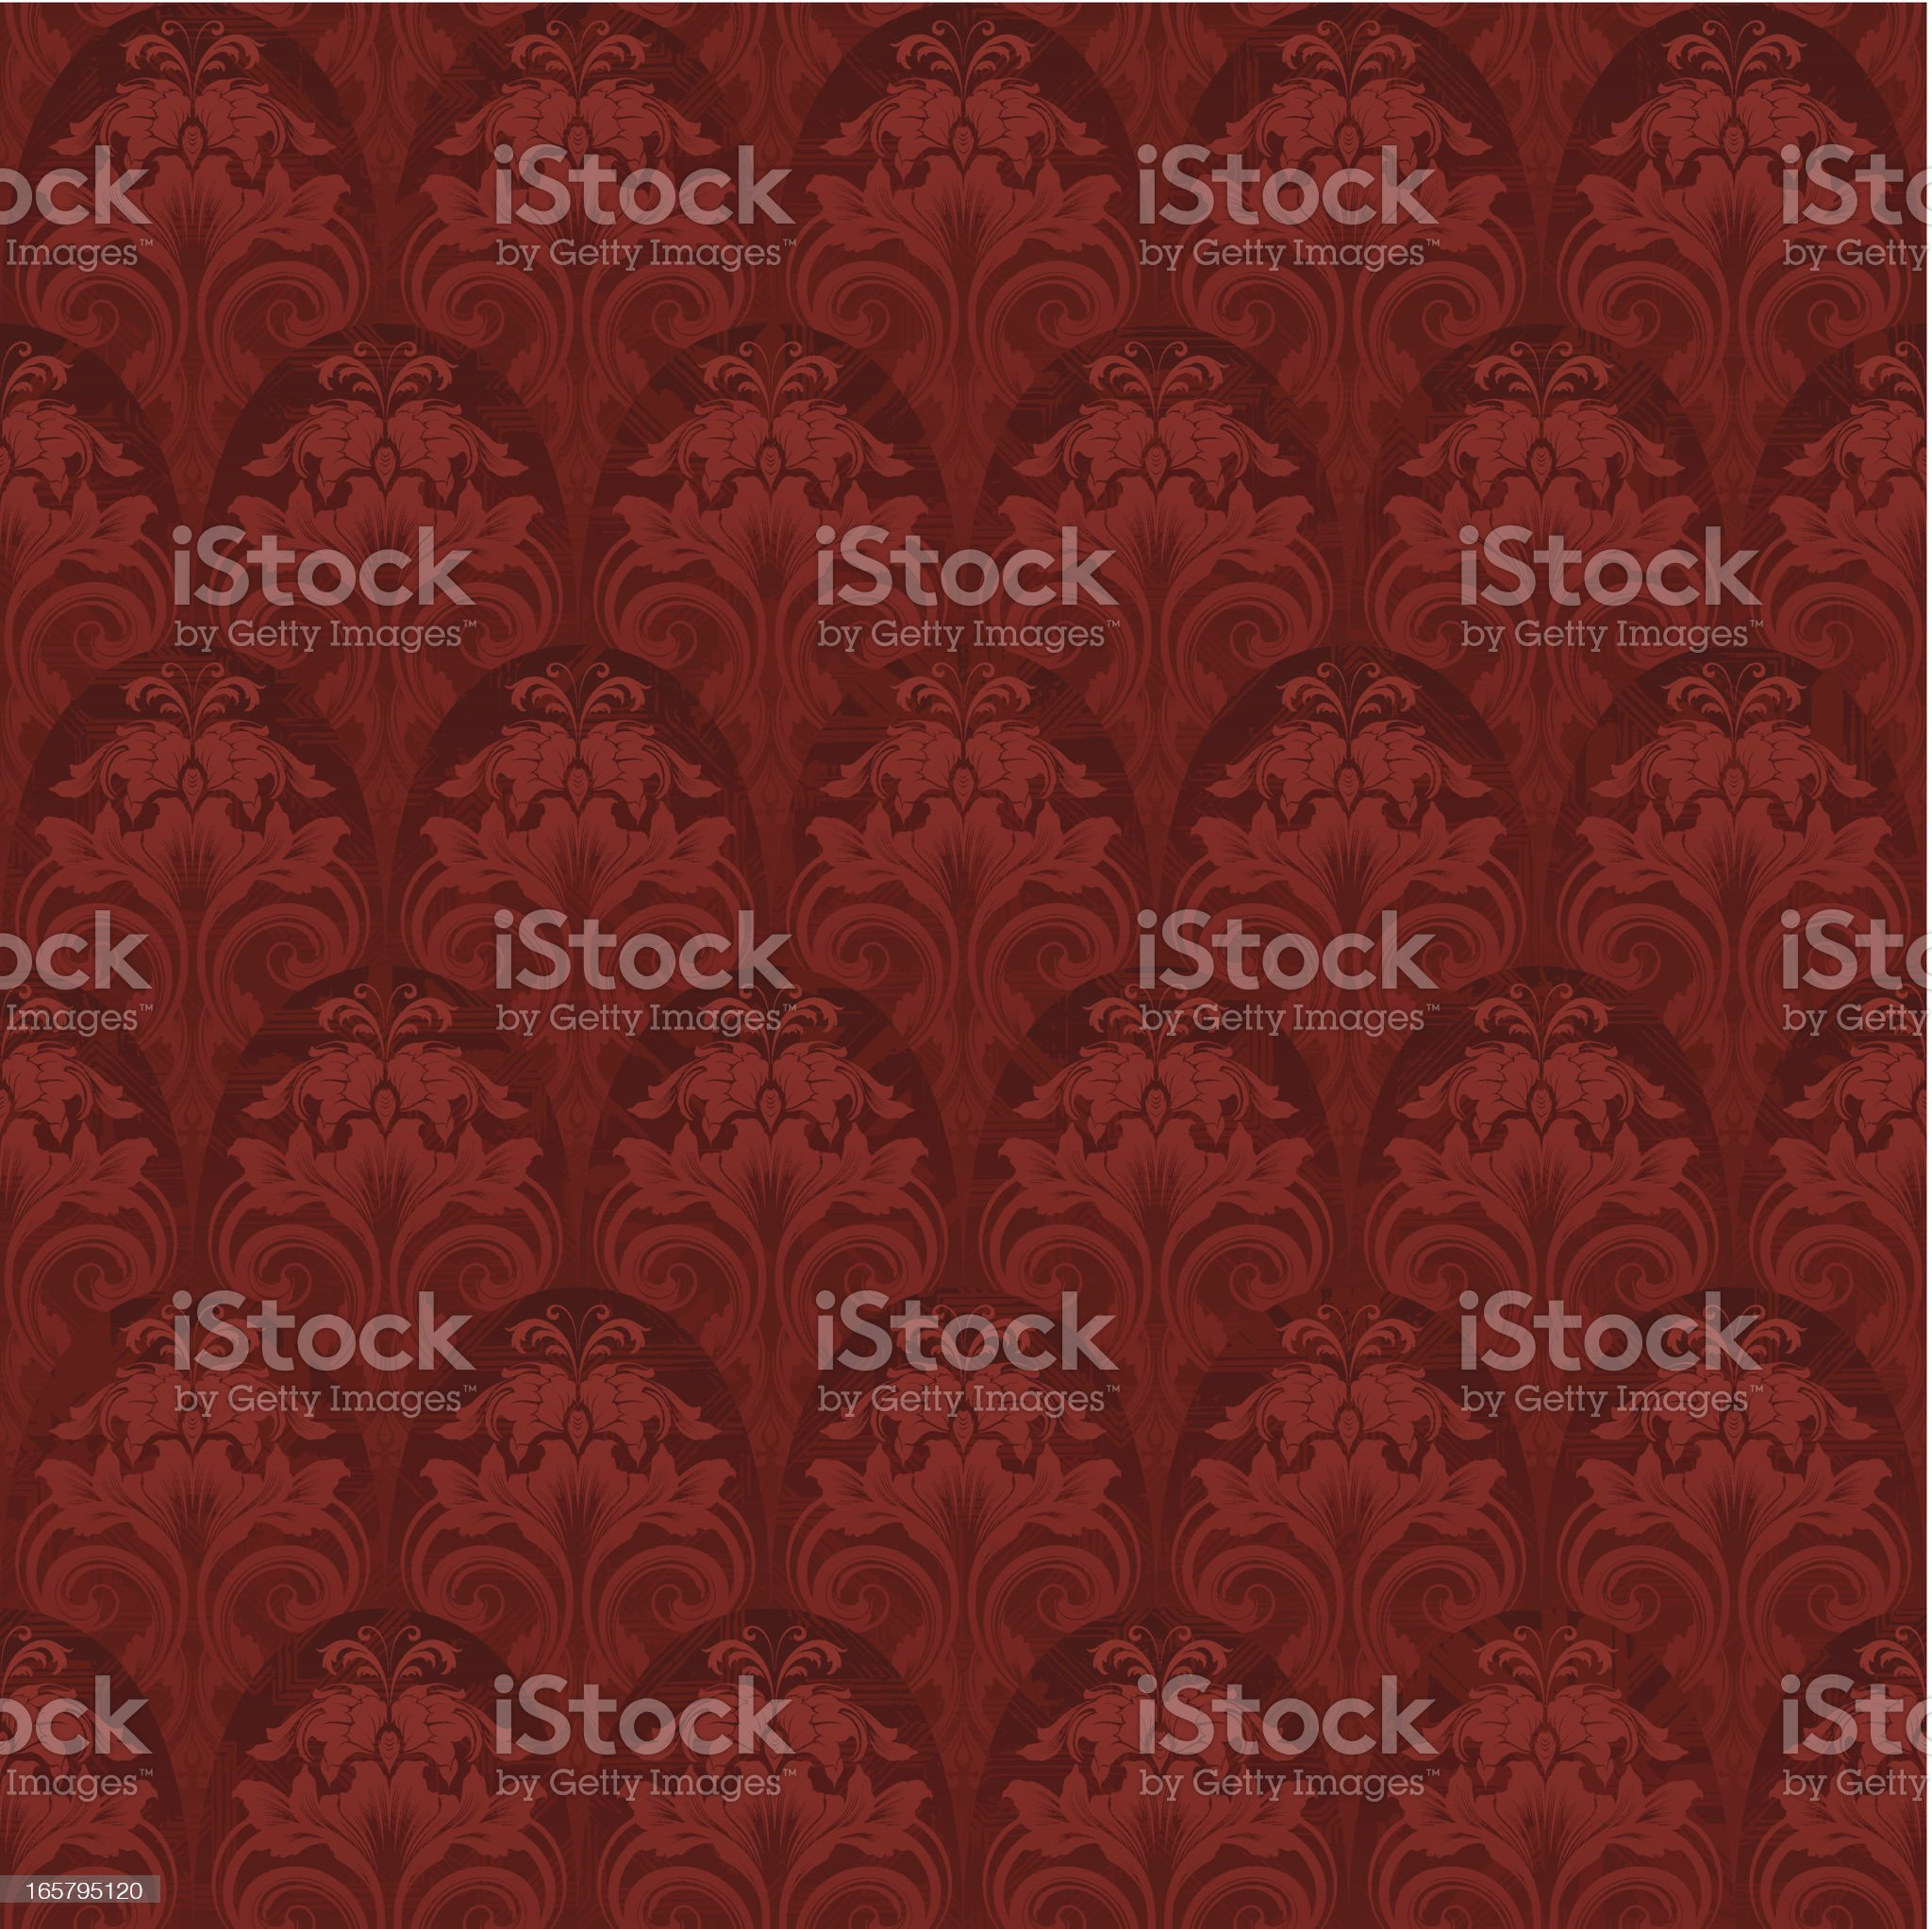 Seamless elegant wallpaper background royalty-free stock vector art